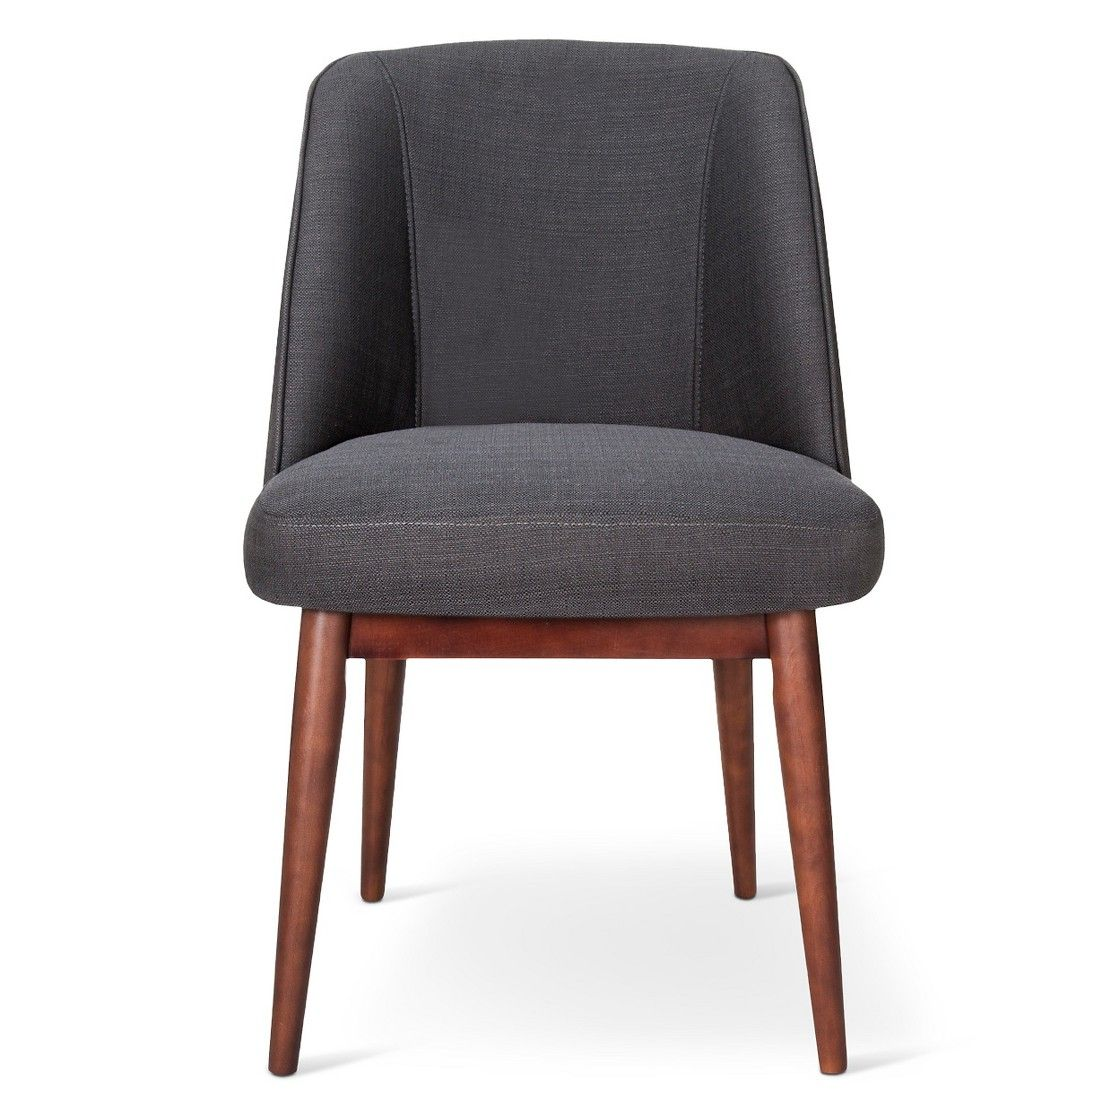 Chairs From Target Modern Anywhere Chair Graphite Threshold Chairs The